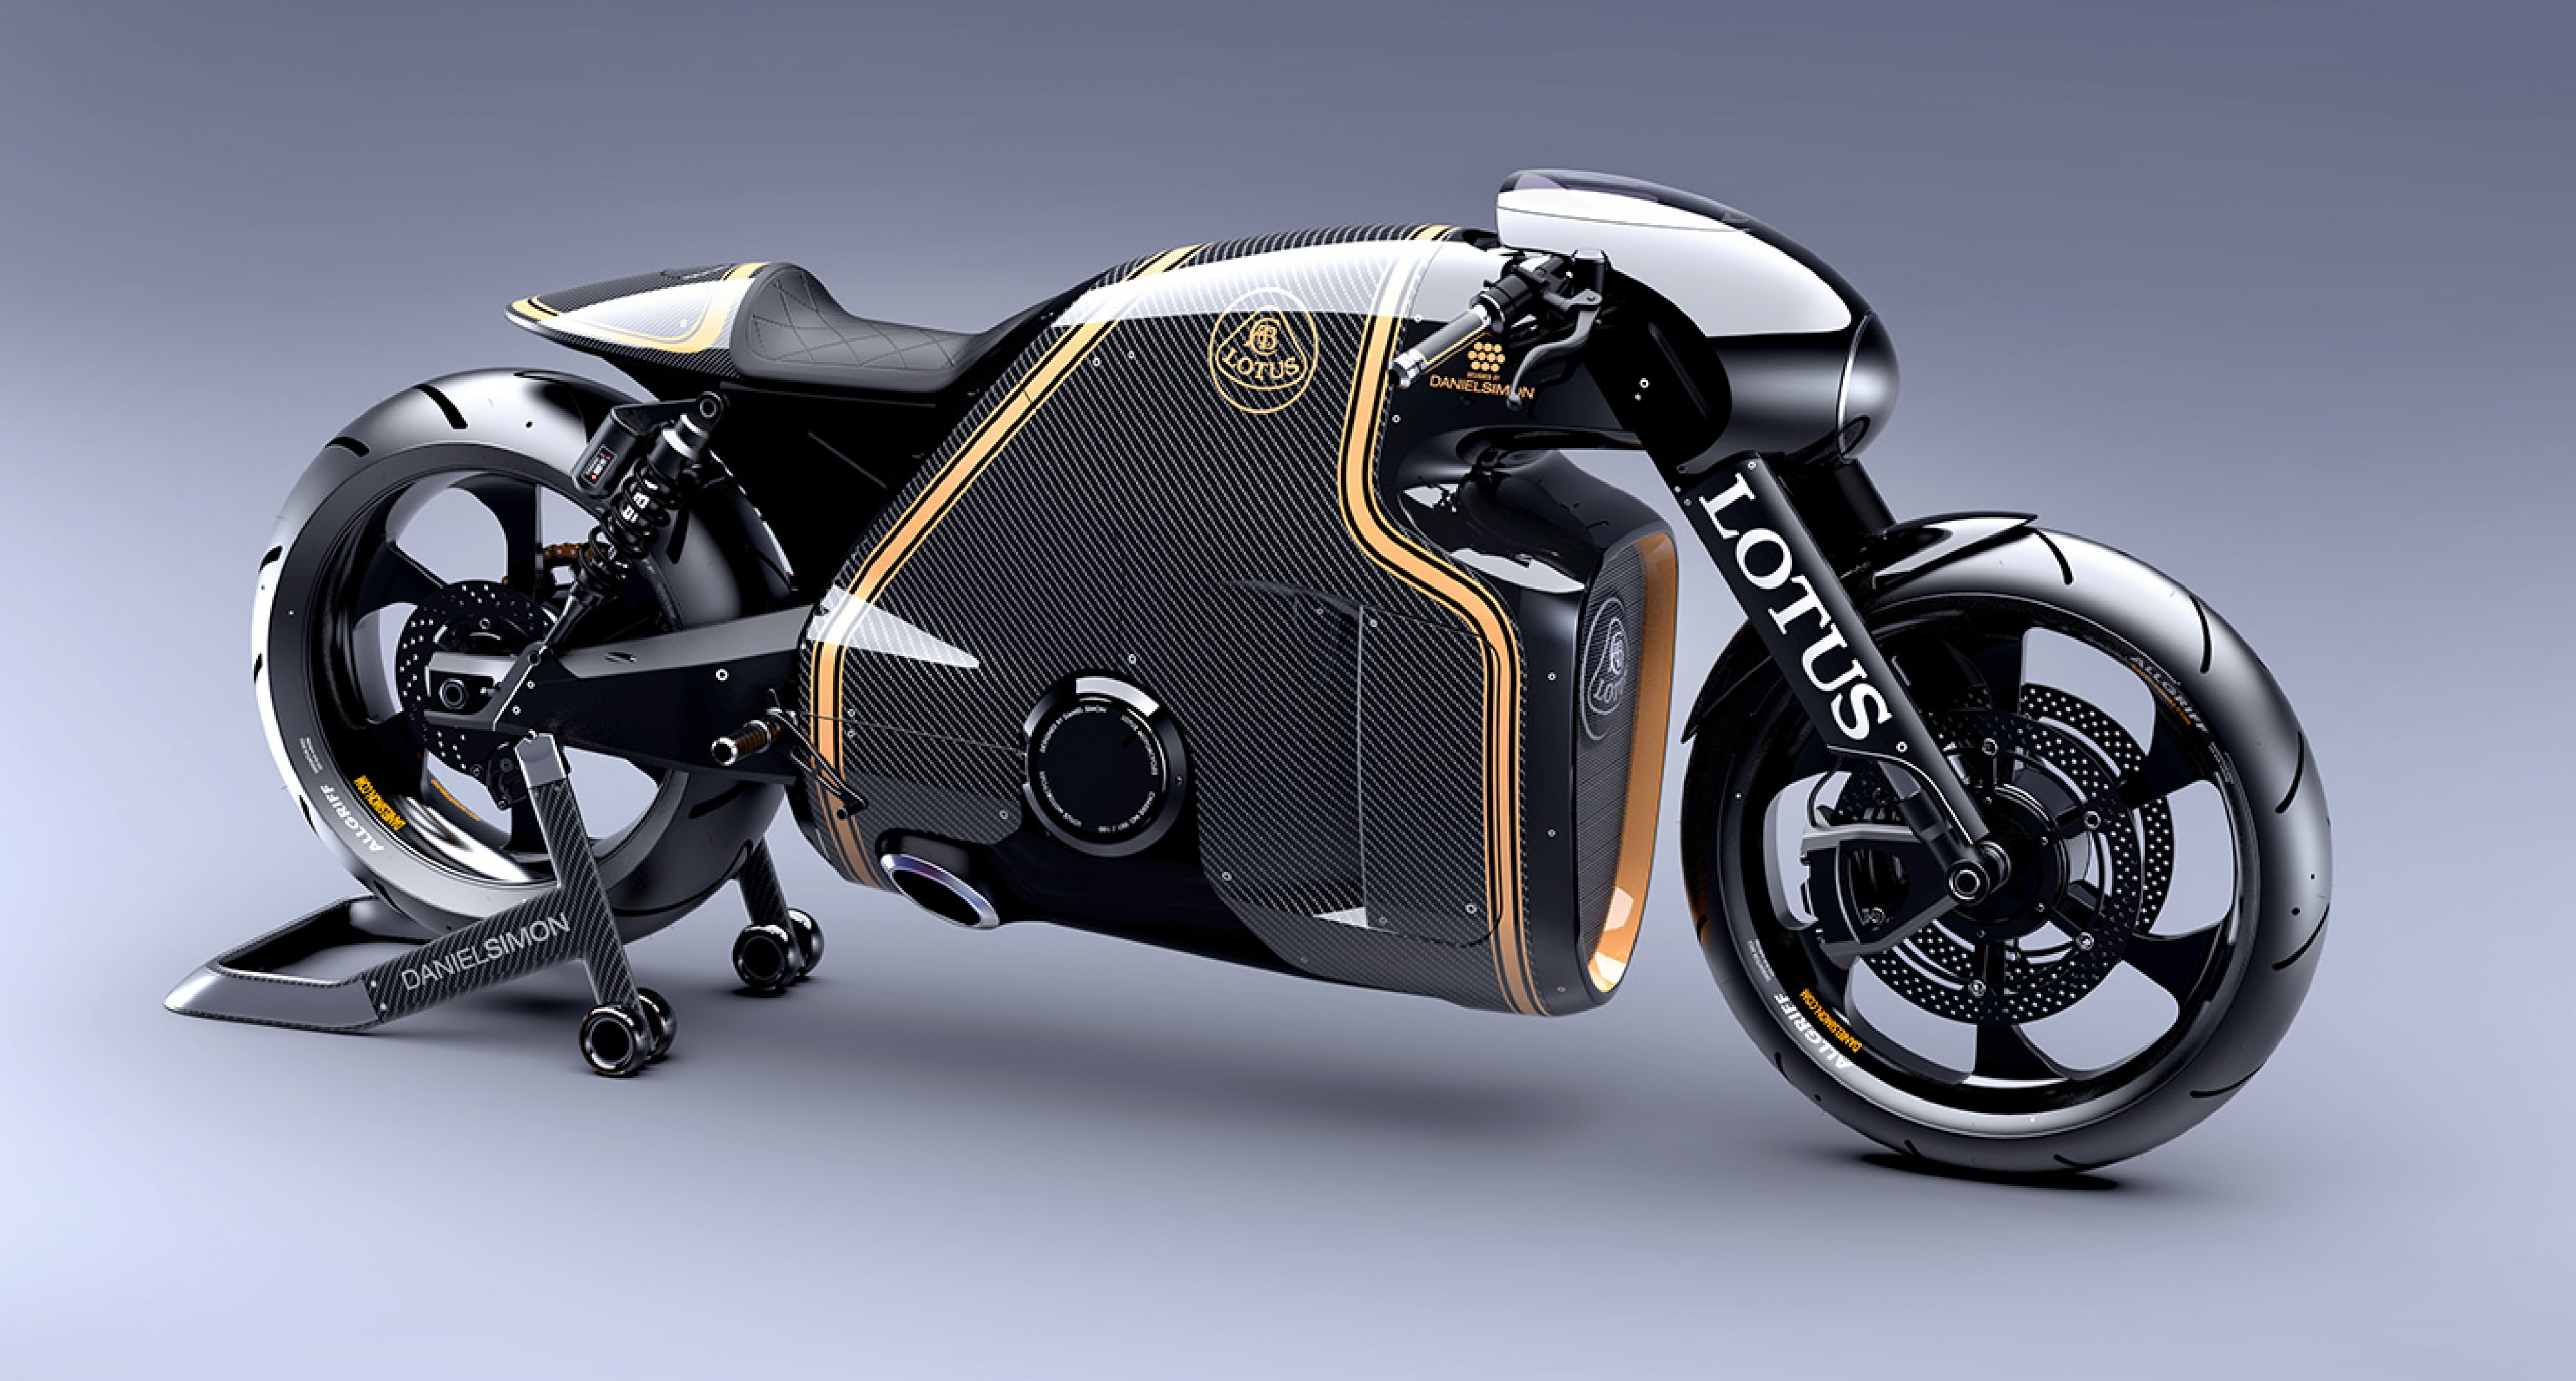 The Lotus Motorcycles C-01 is the first Lotus-badged bike